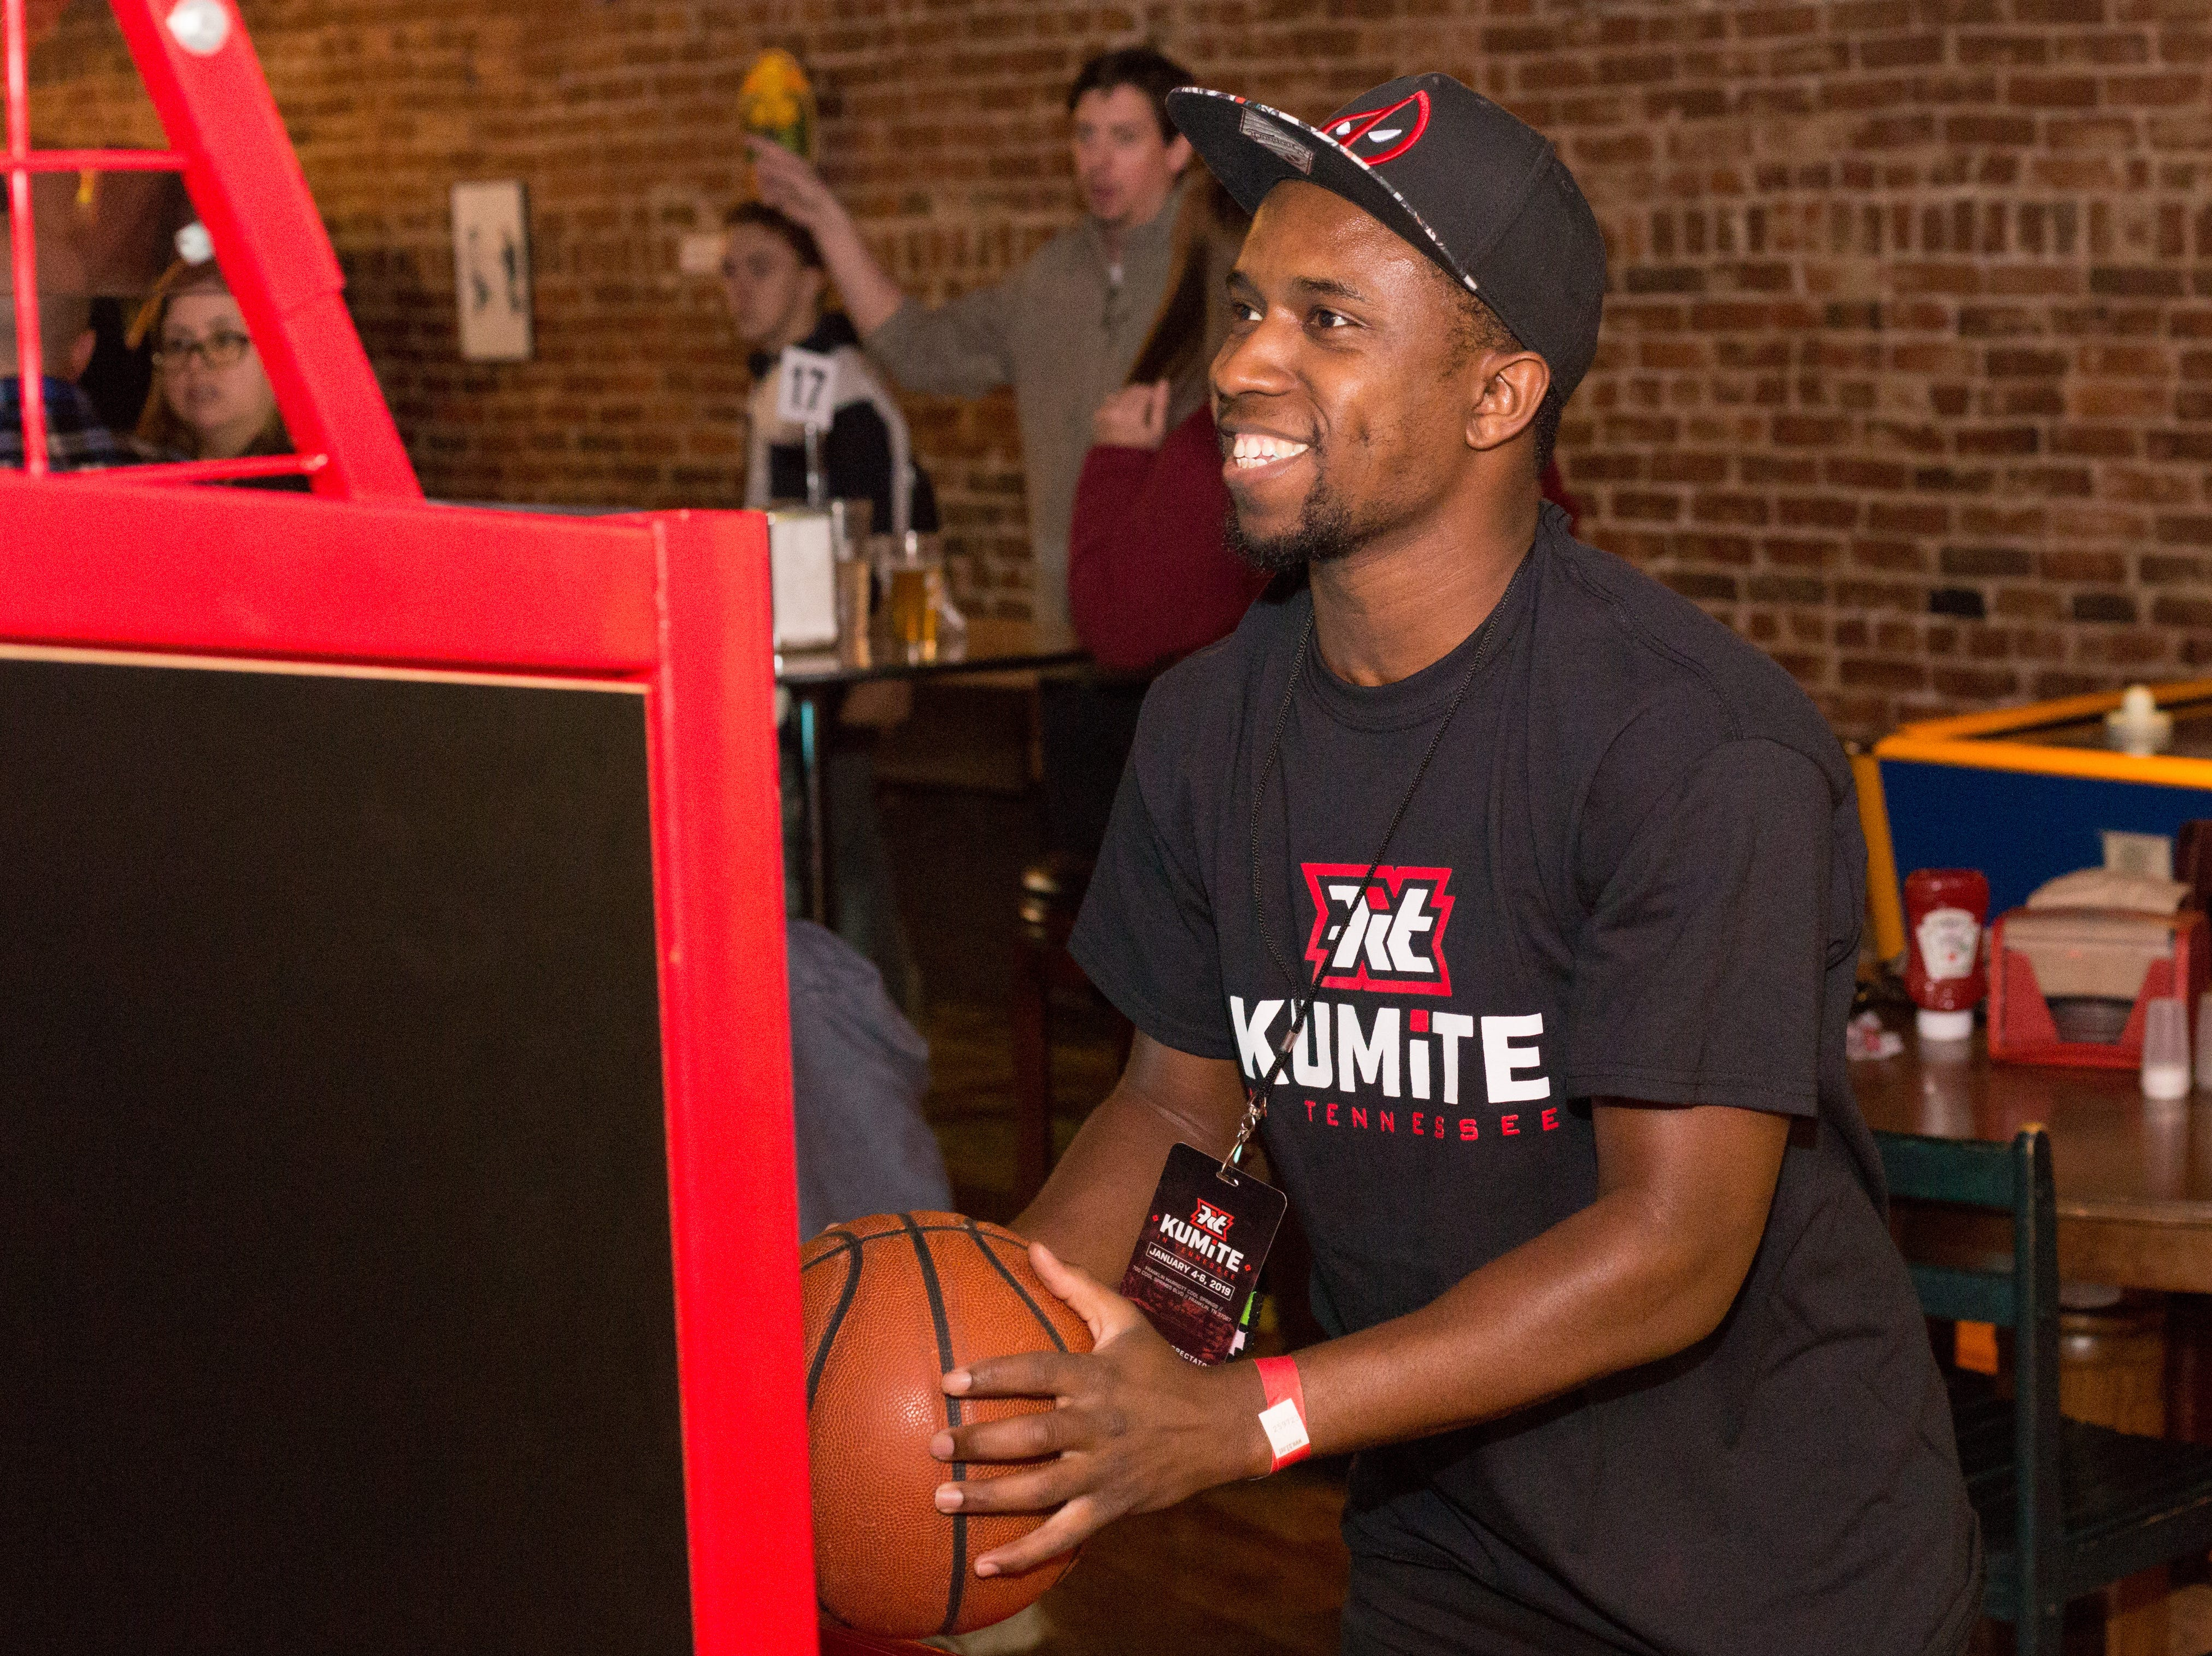 Walter Witherspoon takes time to shoot some hoops during a Super Smash Brothers Ultimate Tournament presented by Big Dad Games at Filly's Game and Grill in Gallatin on Monday, Jan 14.